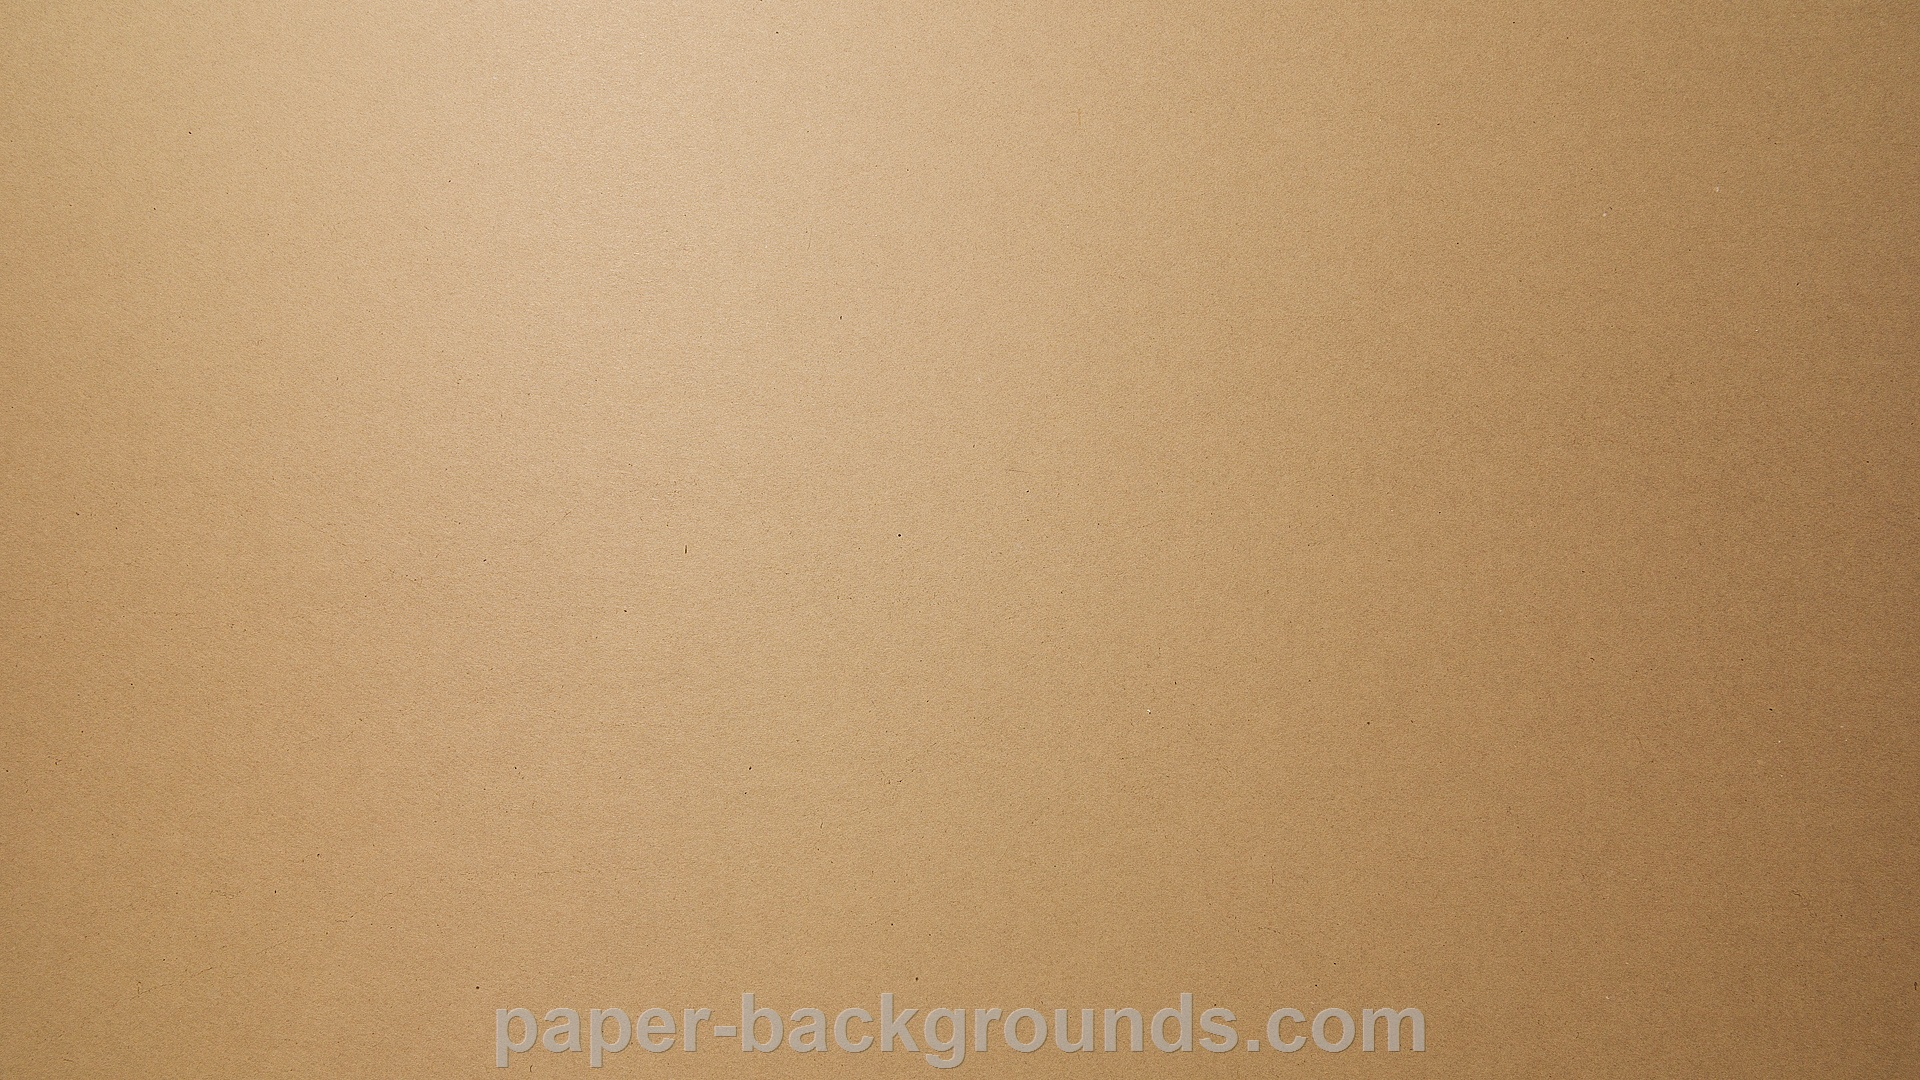 Paper Backgrounds | brown-cardboard-paper-texture-hd